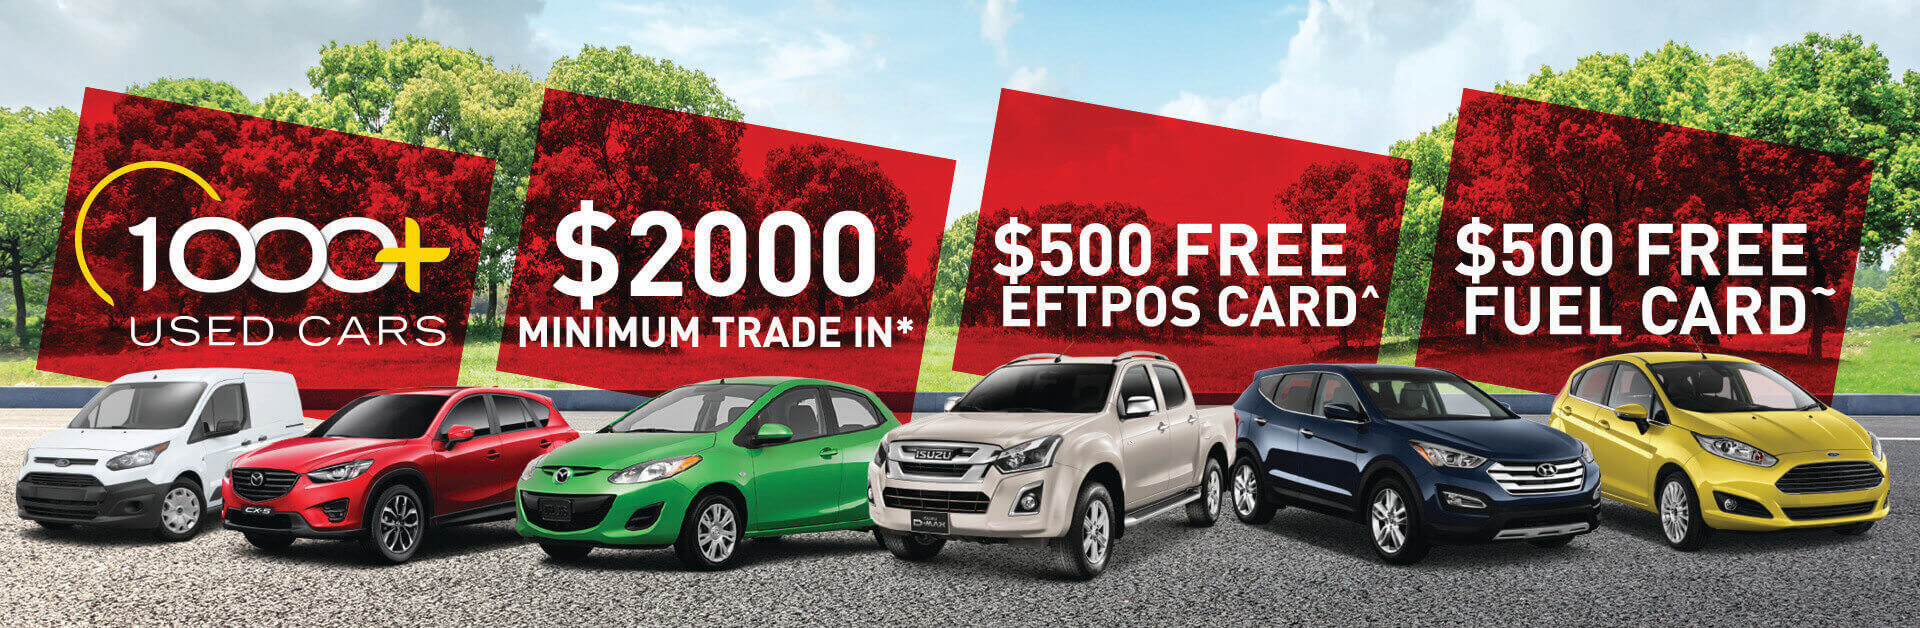 Frizelle Used Cars July Offer